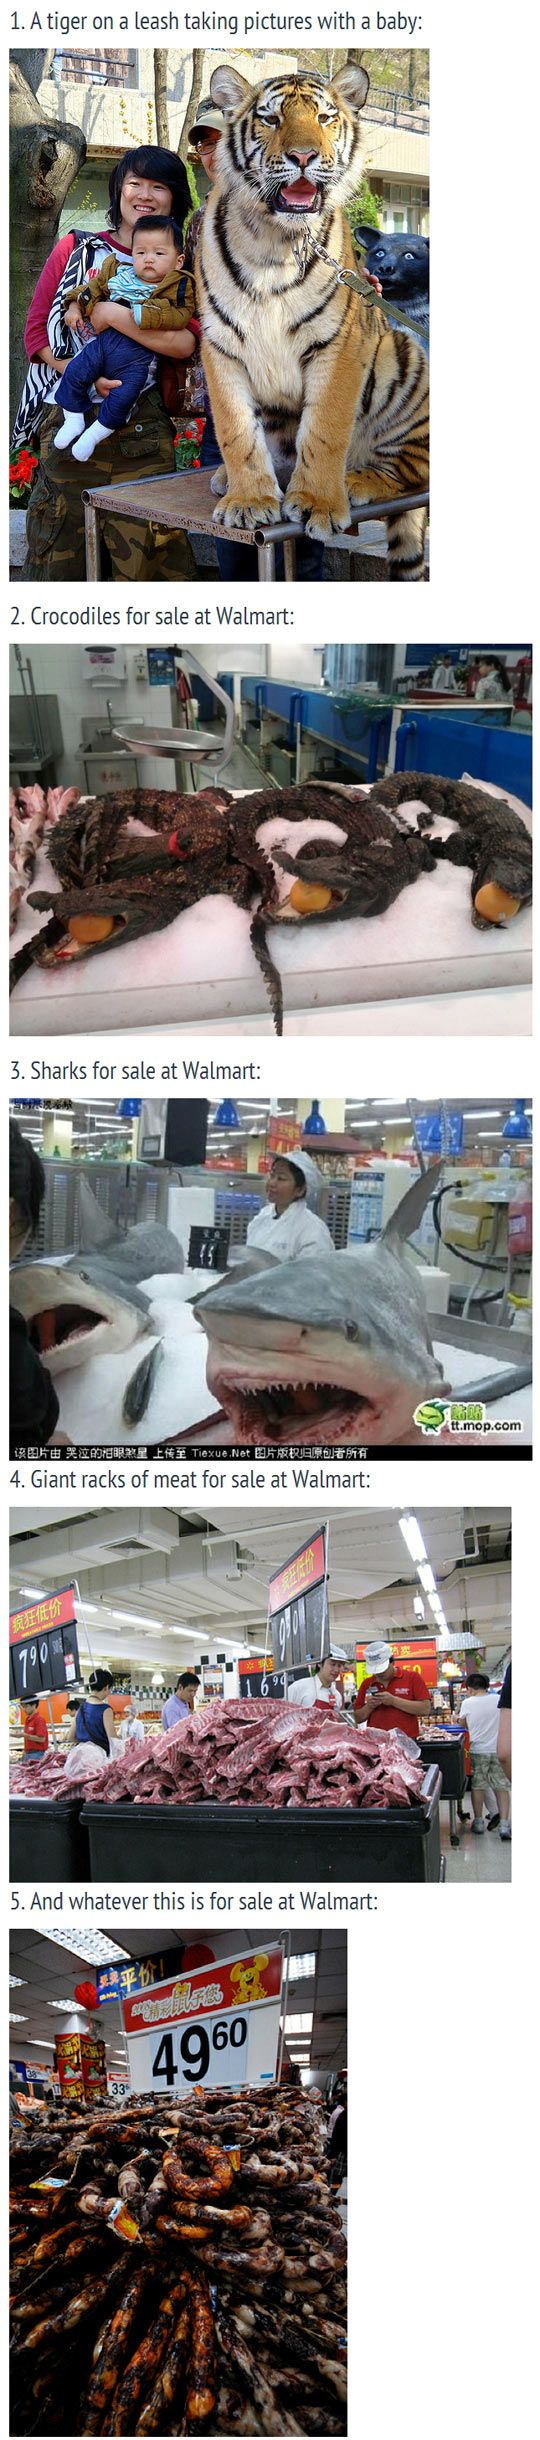 wal mart in china Have you ever visited a walmart in another nation a look inside china shows  some major differences in how our countries operate and.